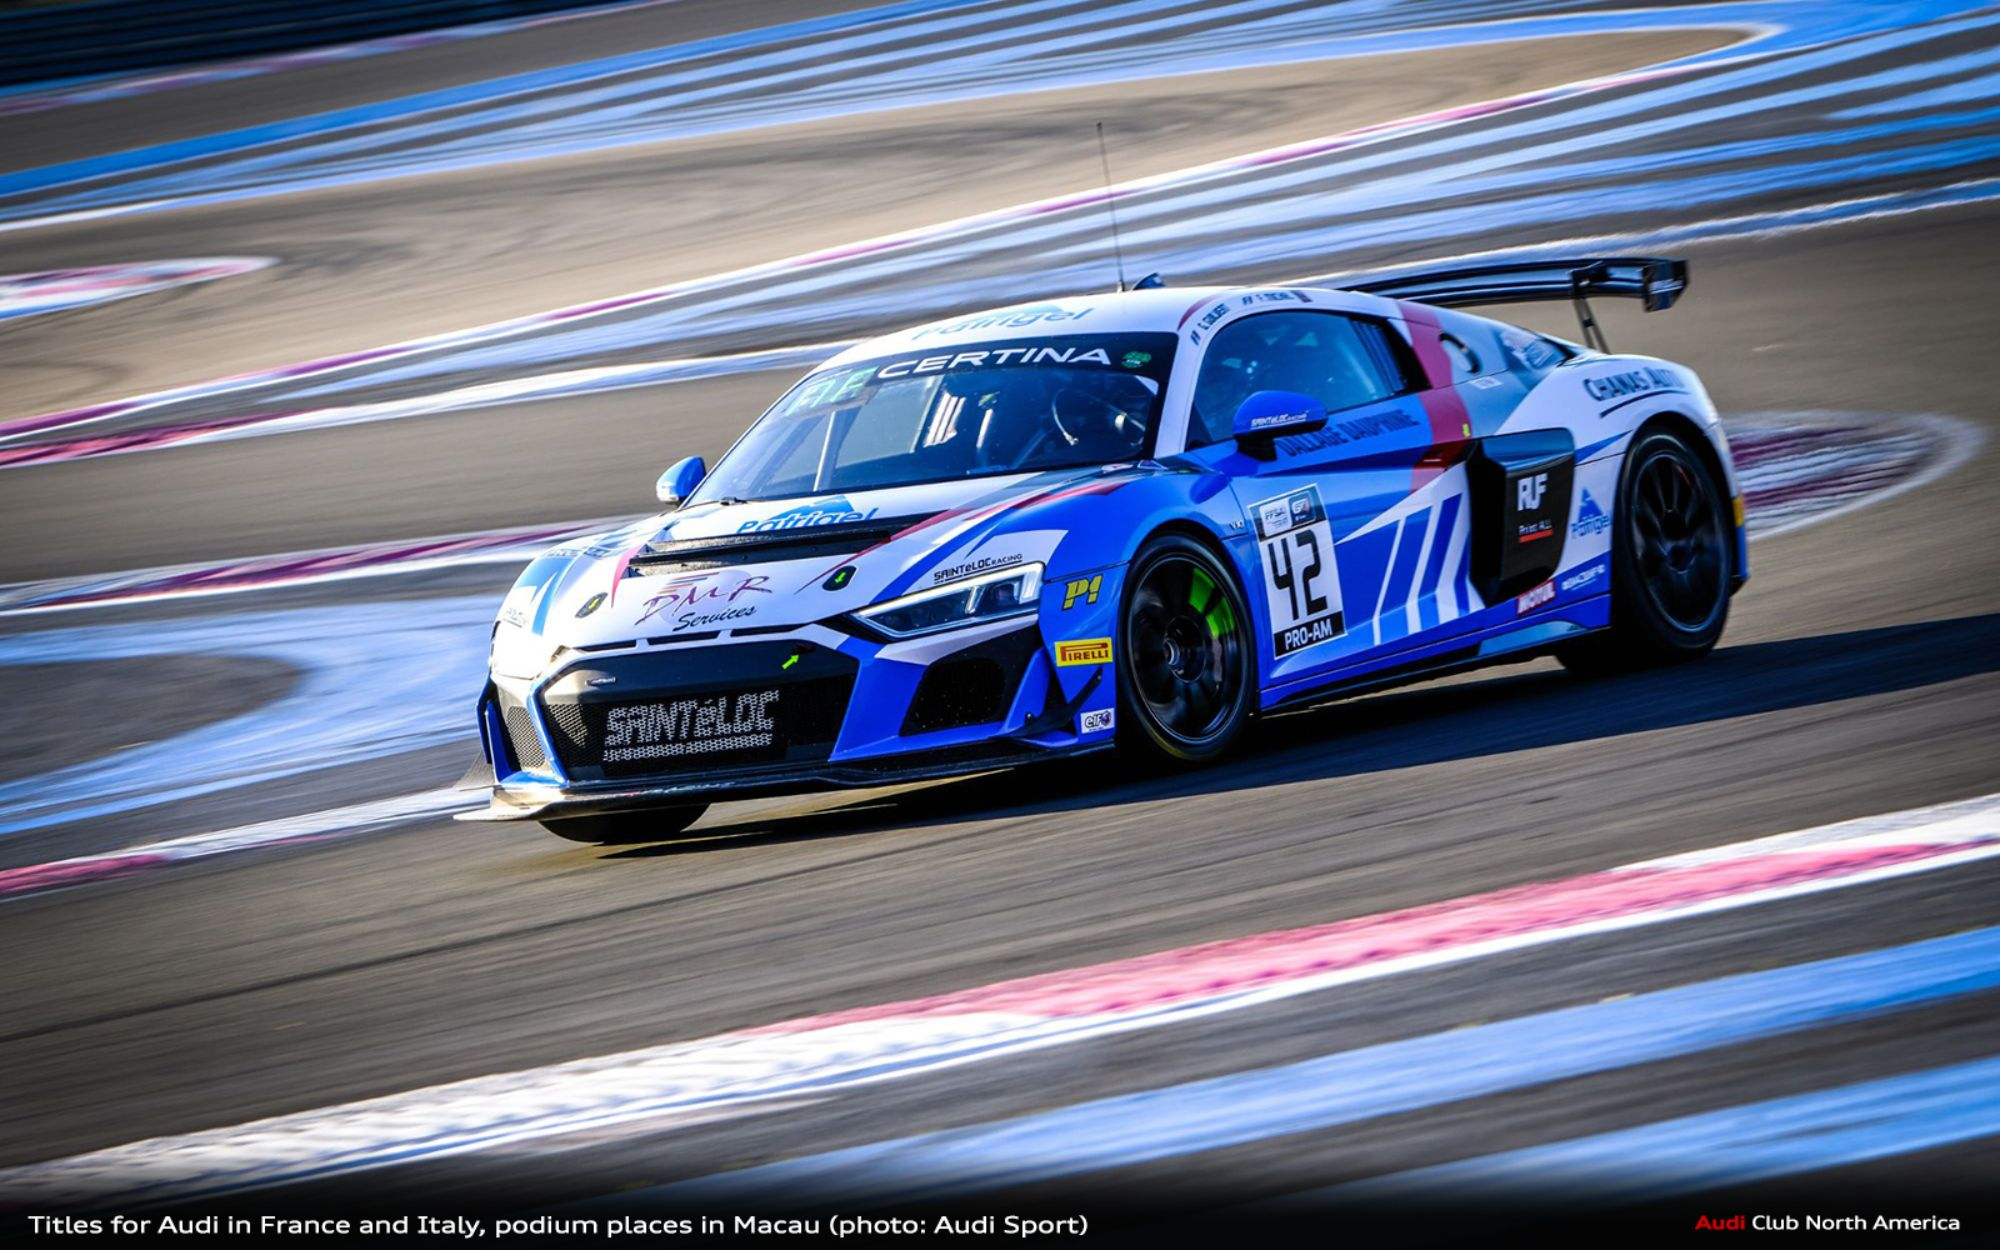 Titles for Audi in France and Italy, Podium Places in Macau